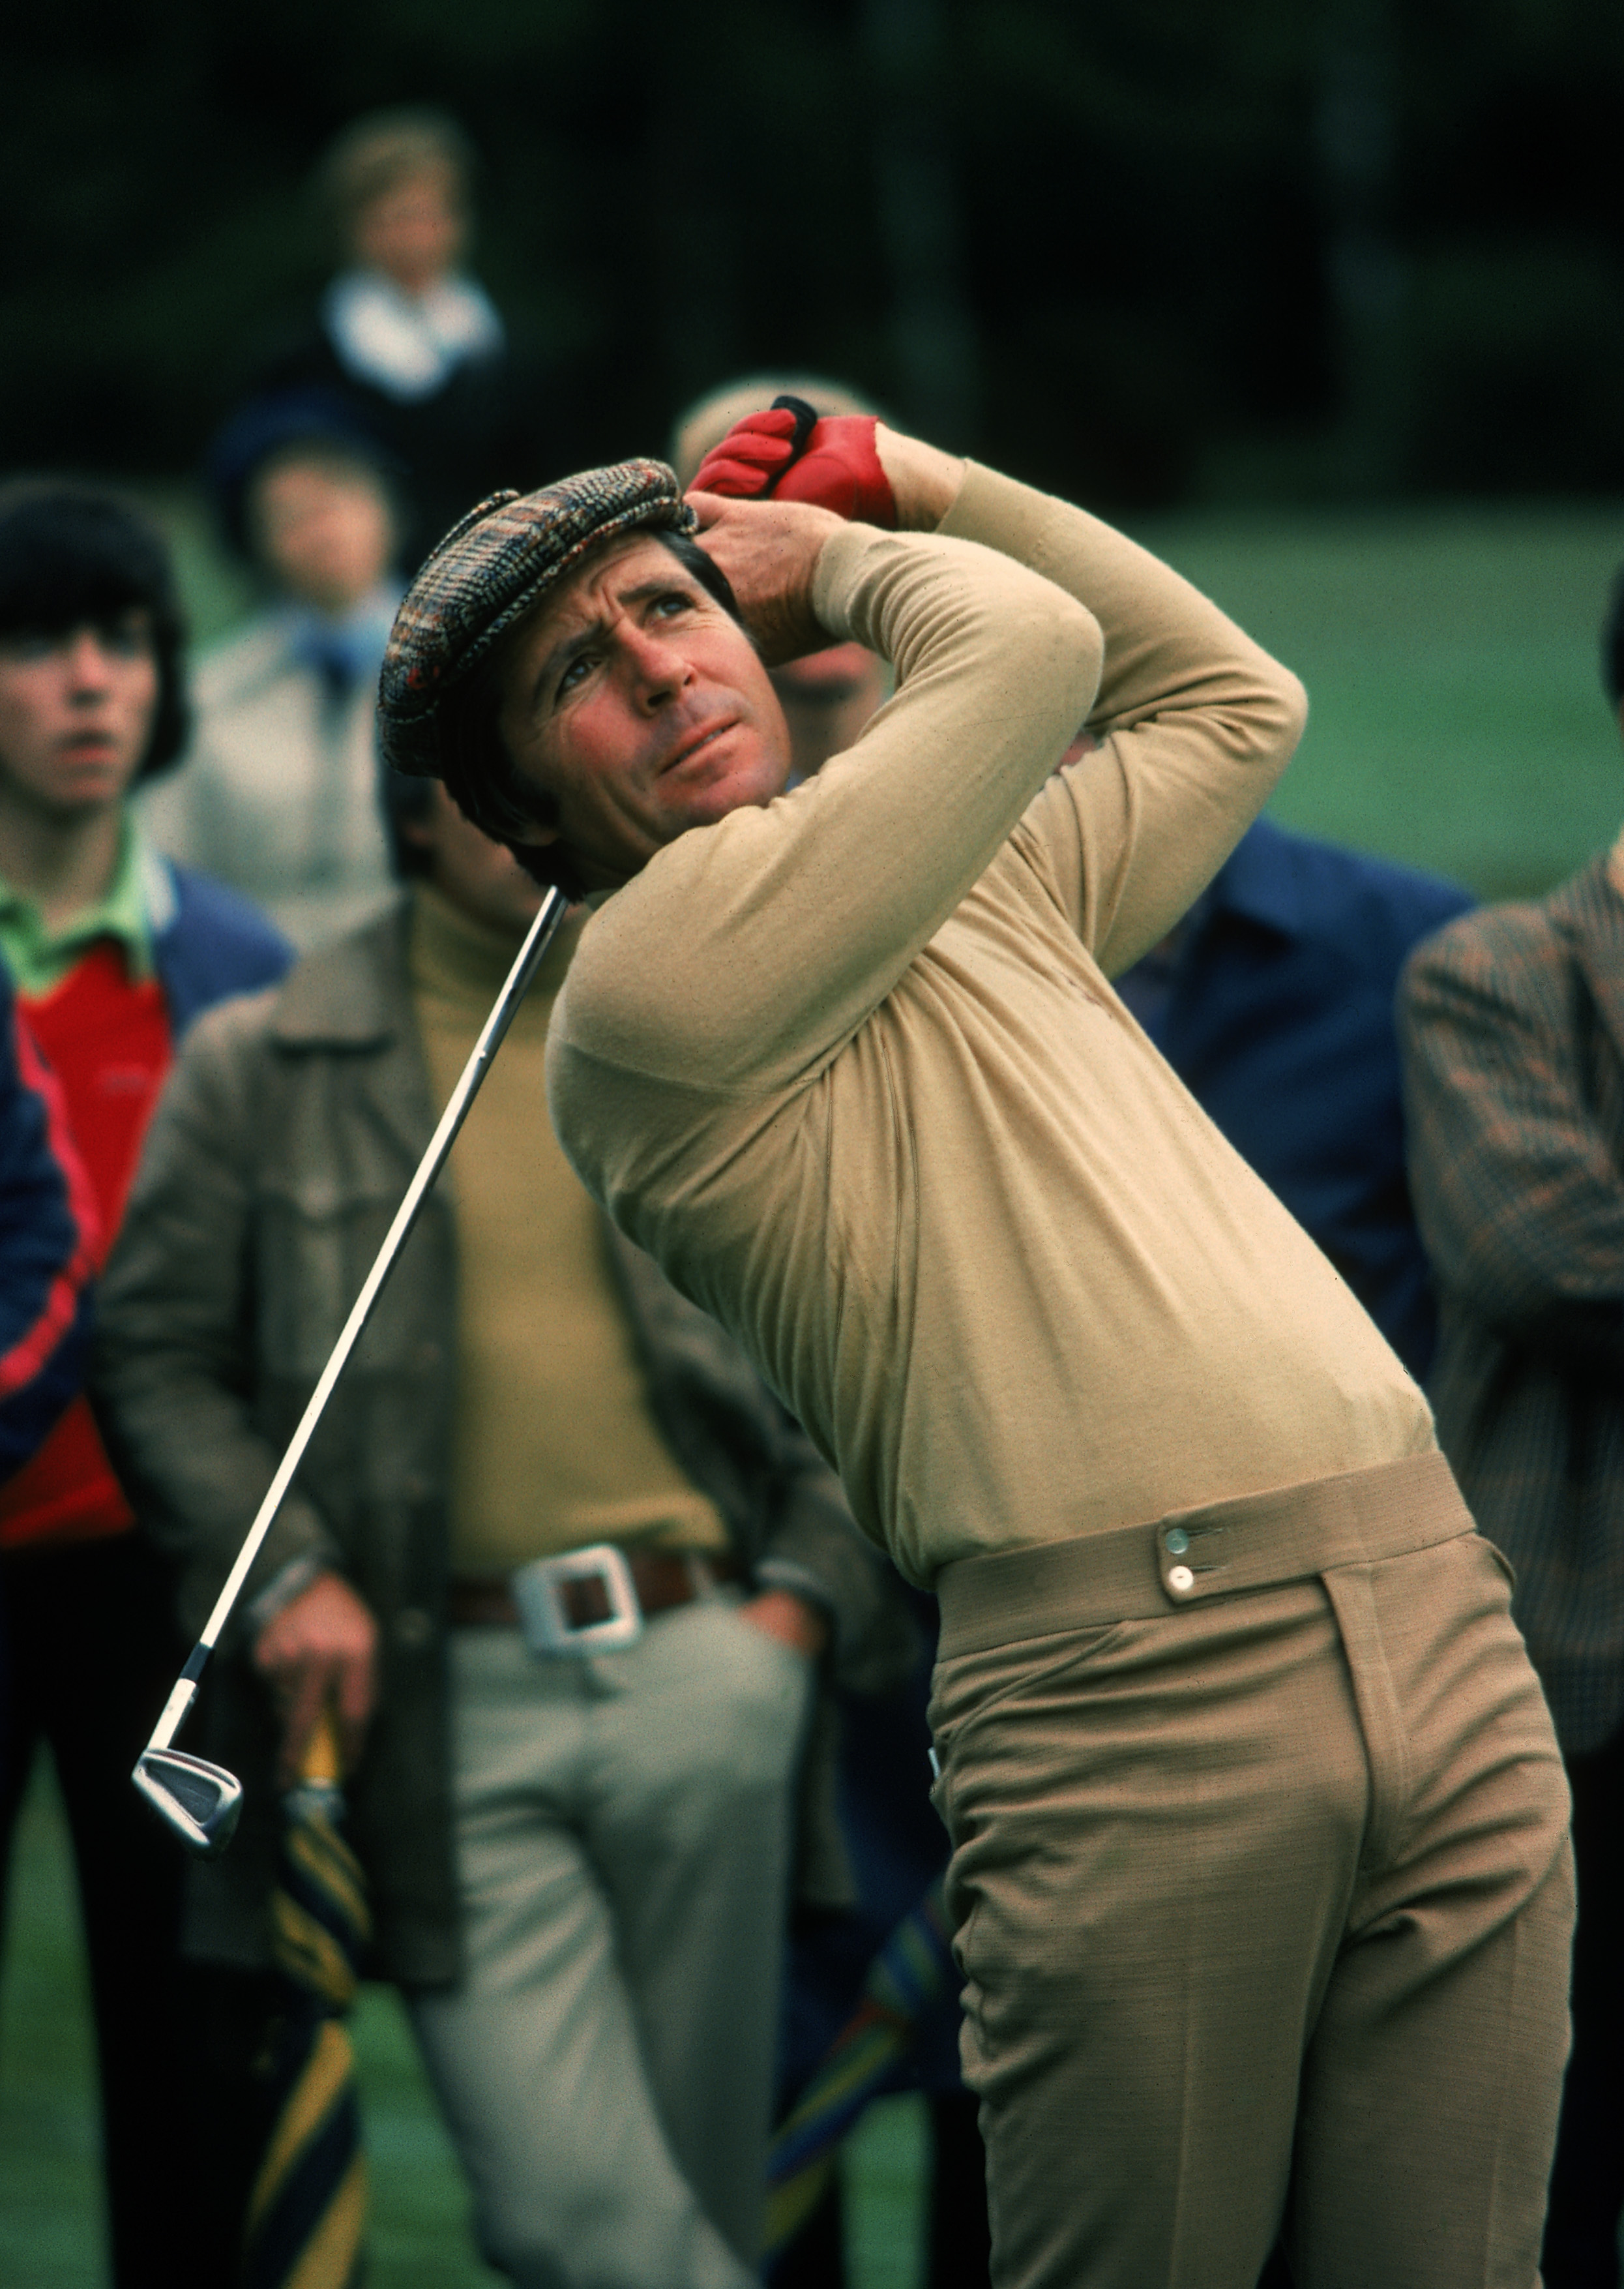 WENTWORTH - 1976:  Gary Player of South Africa in action in during the Piccadilly World Match Play at Wentworth Golf Club in Surrey, England in 1976. (photo by Don Morley/Getty Images)